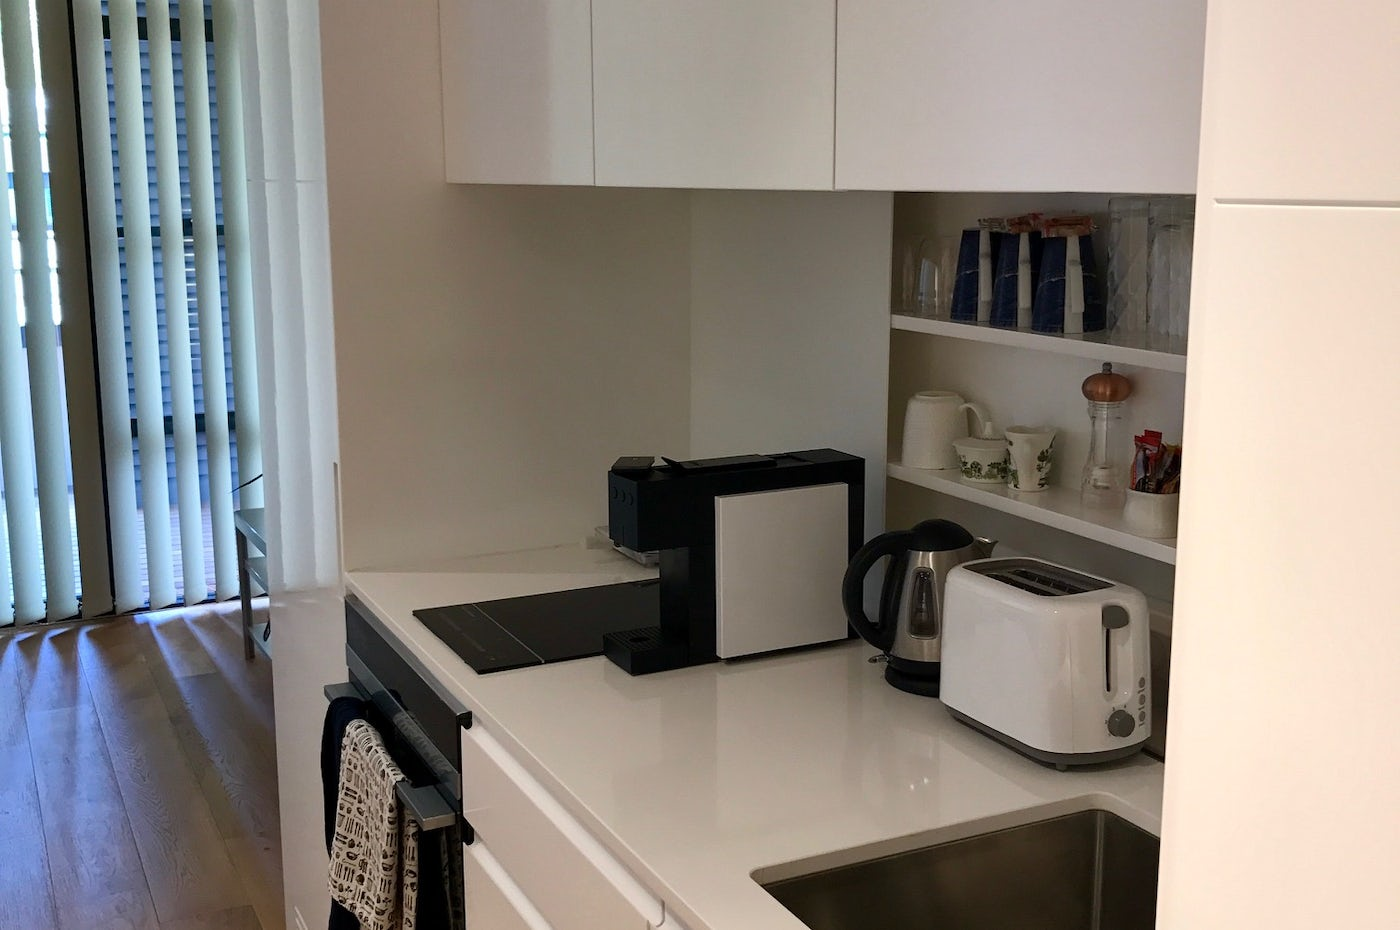 Kitchen at Vulcan Hotel studio apartment